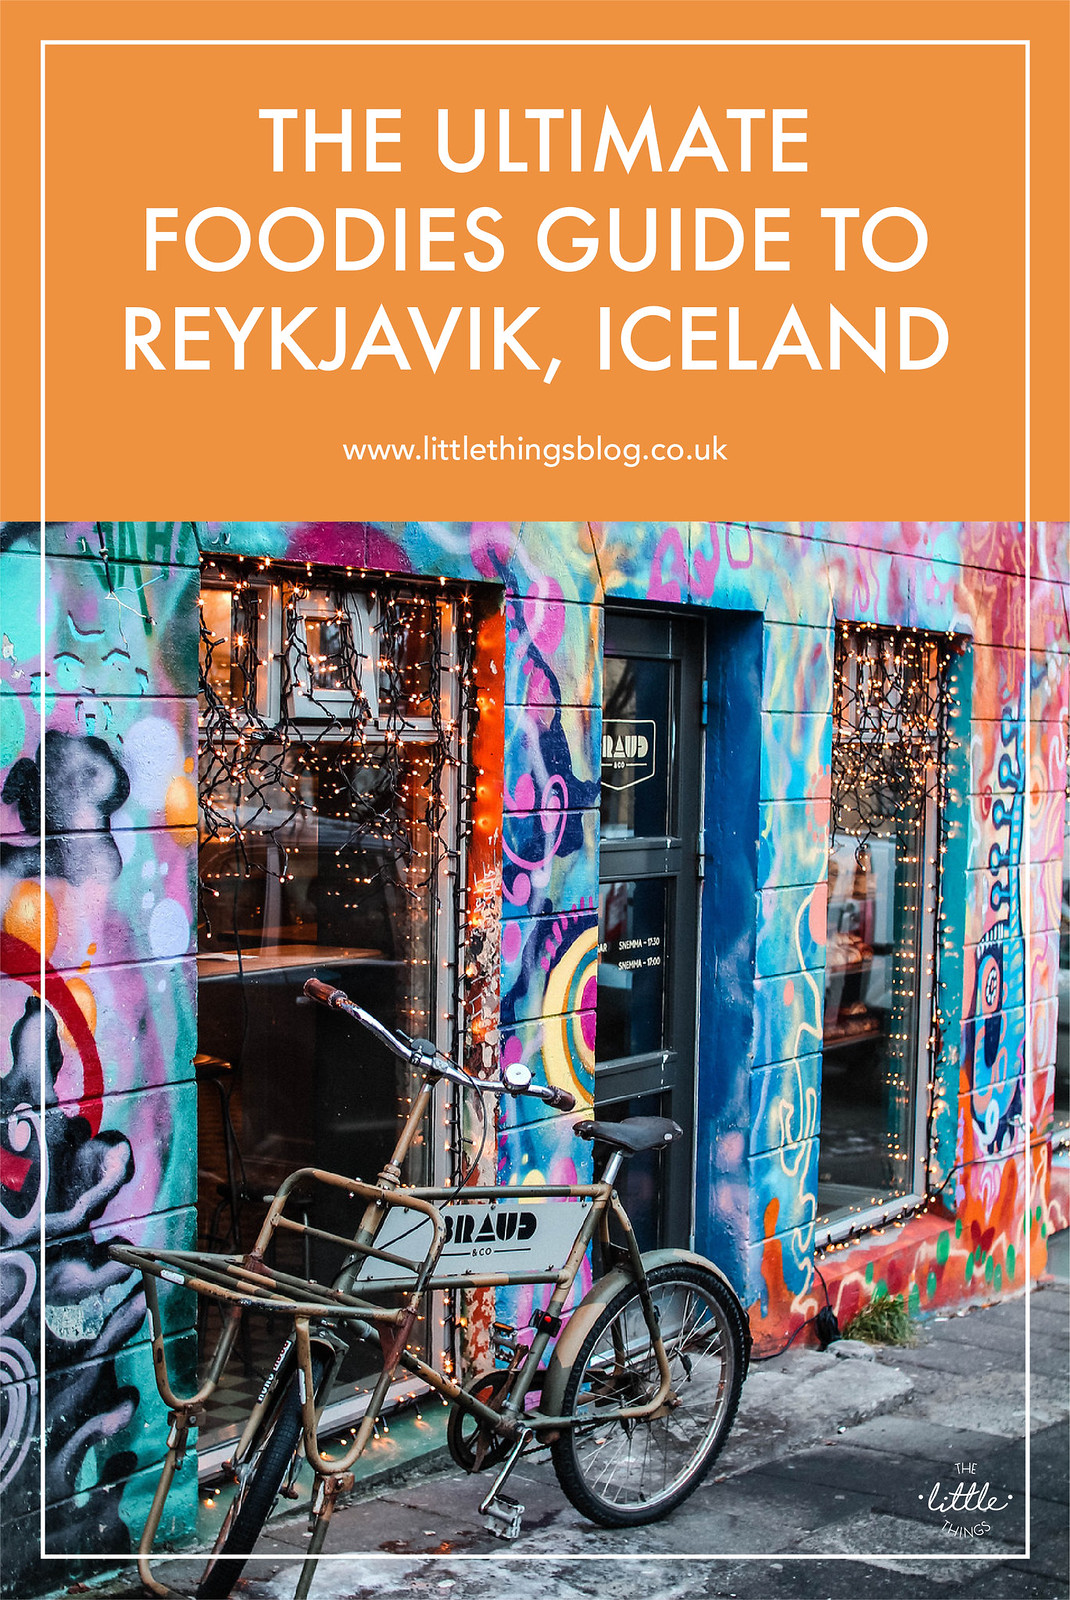 The Ultimate Foodies Guide to Reykjavik, Iceland